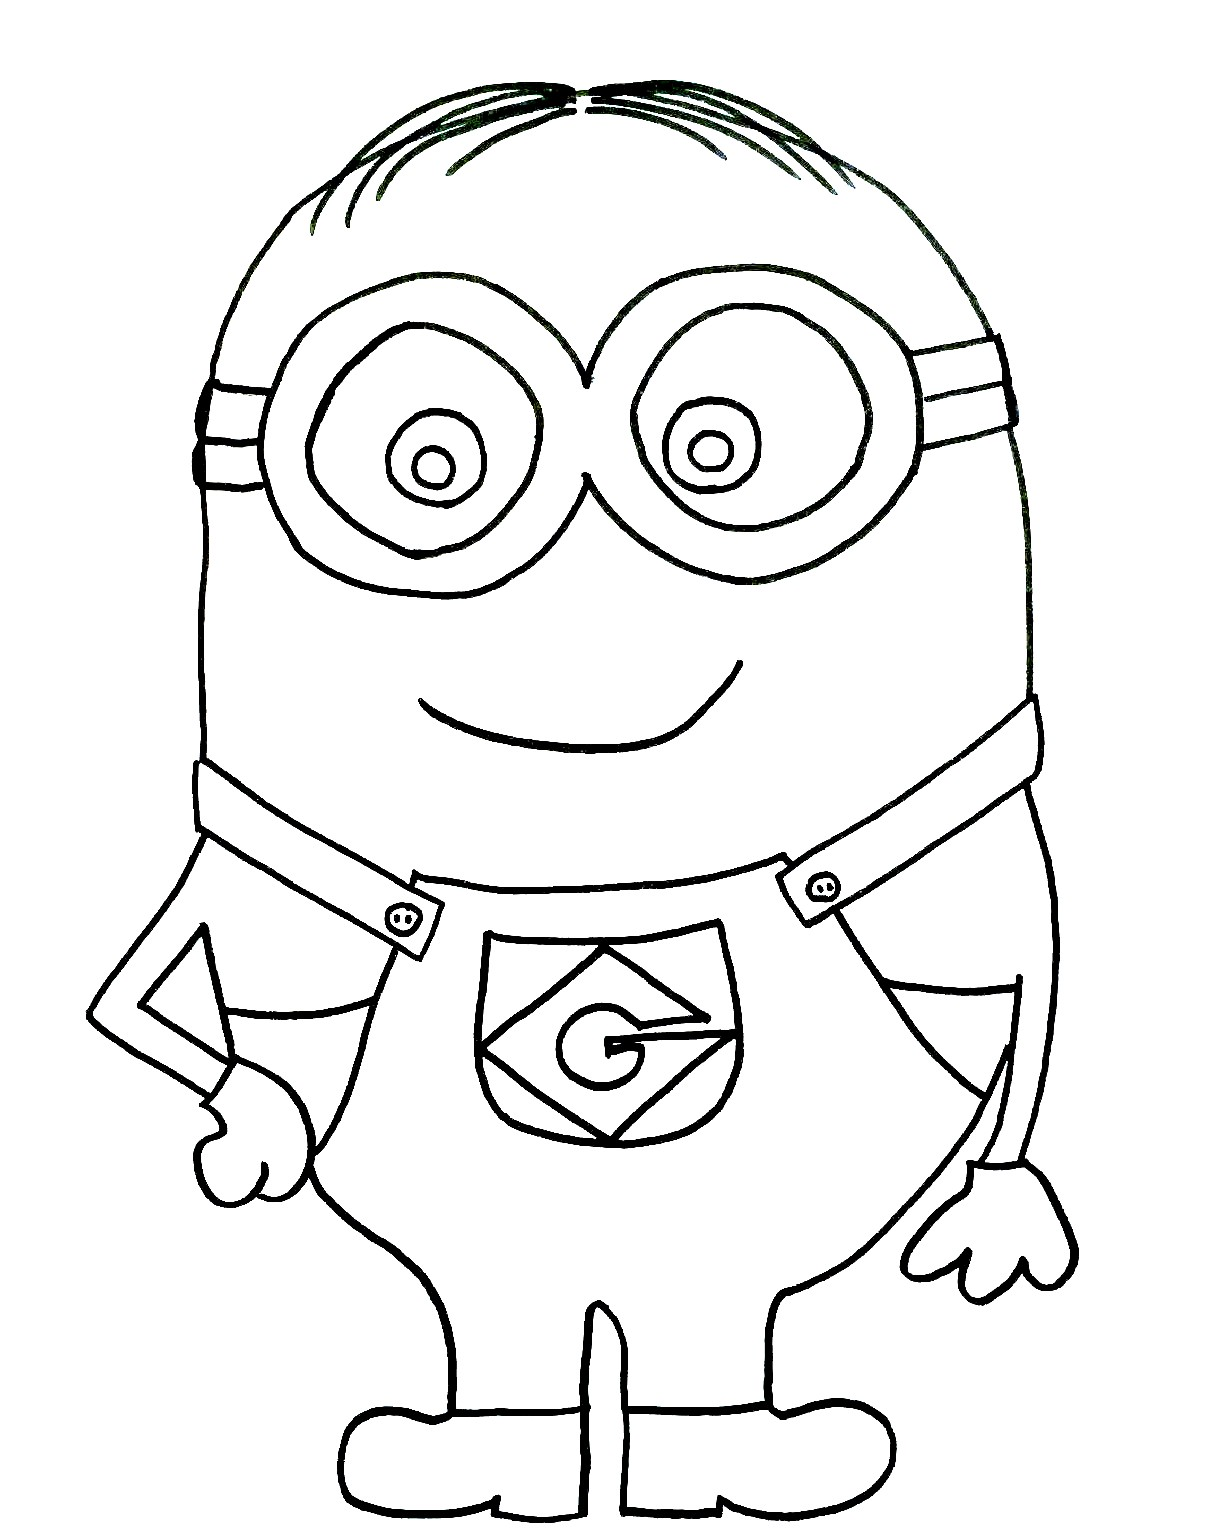 how to make minion goggles step by step